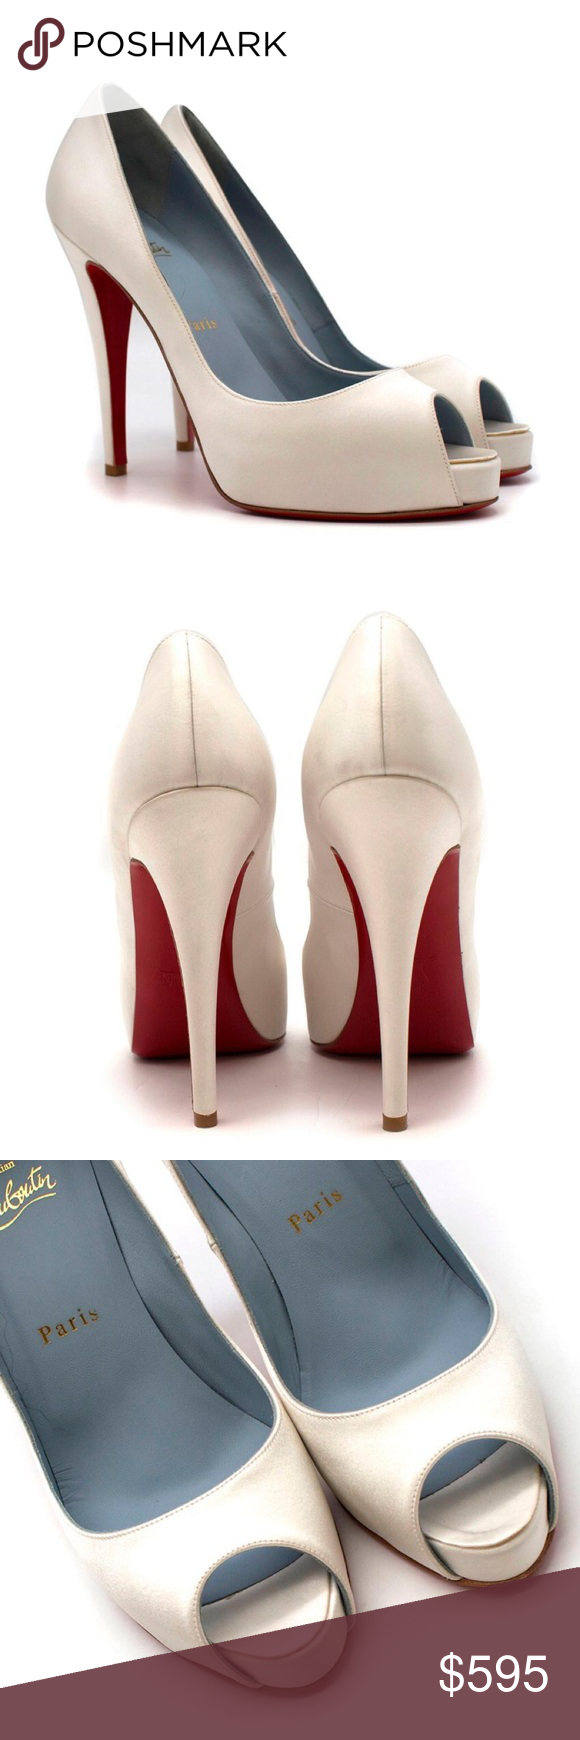 fd504a63cc9 Christian Louboutin Very Prive 120mm off-wht satin Christian Louboutin Very  Prive 120mm off-